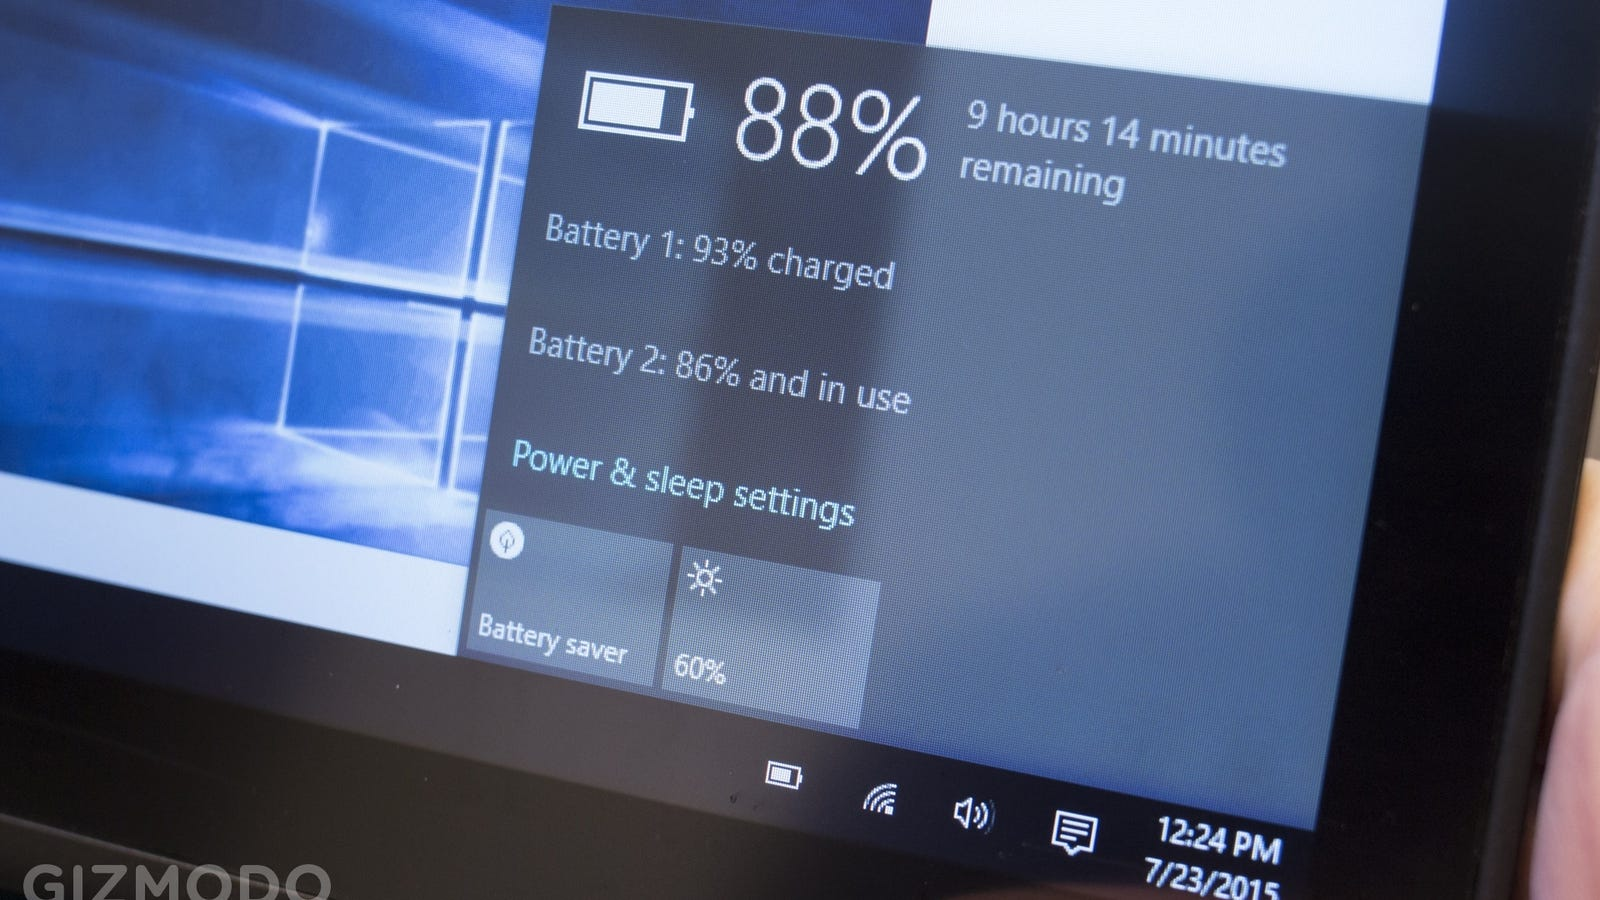 Windows 10 Battery Life Is Better—Except When It's Worse